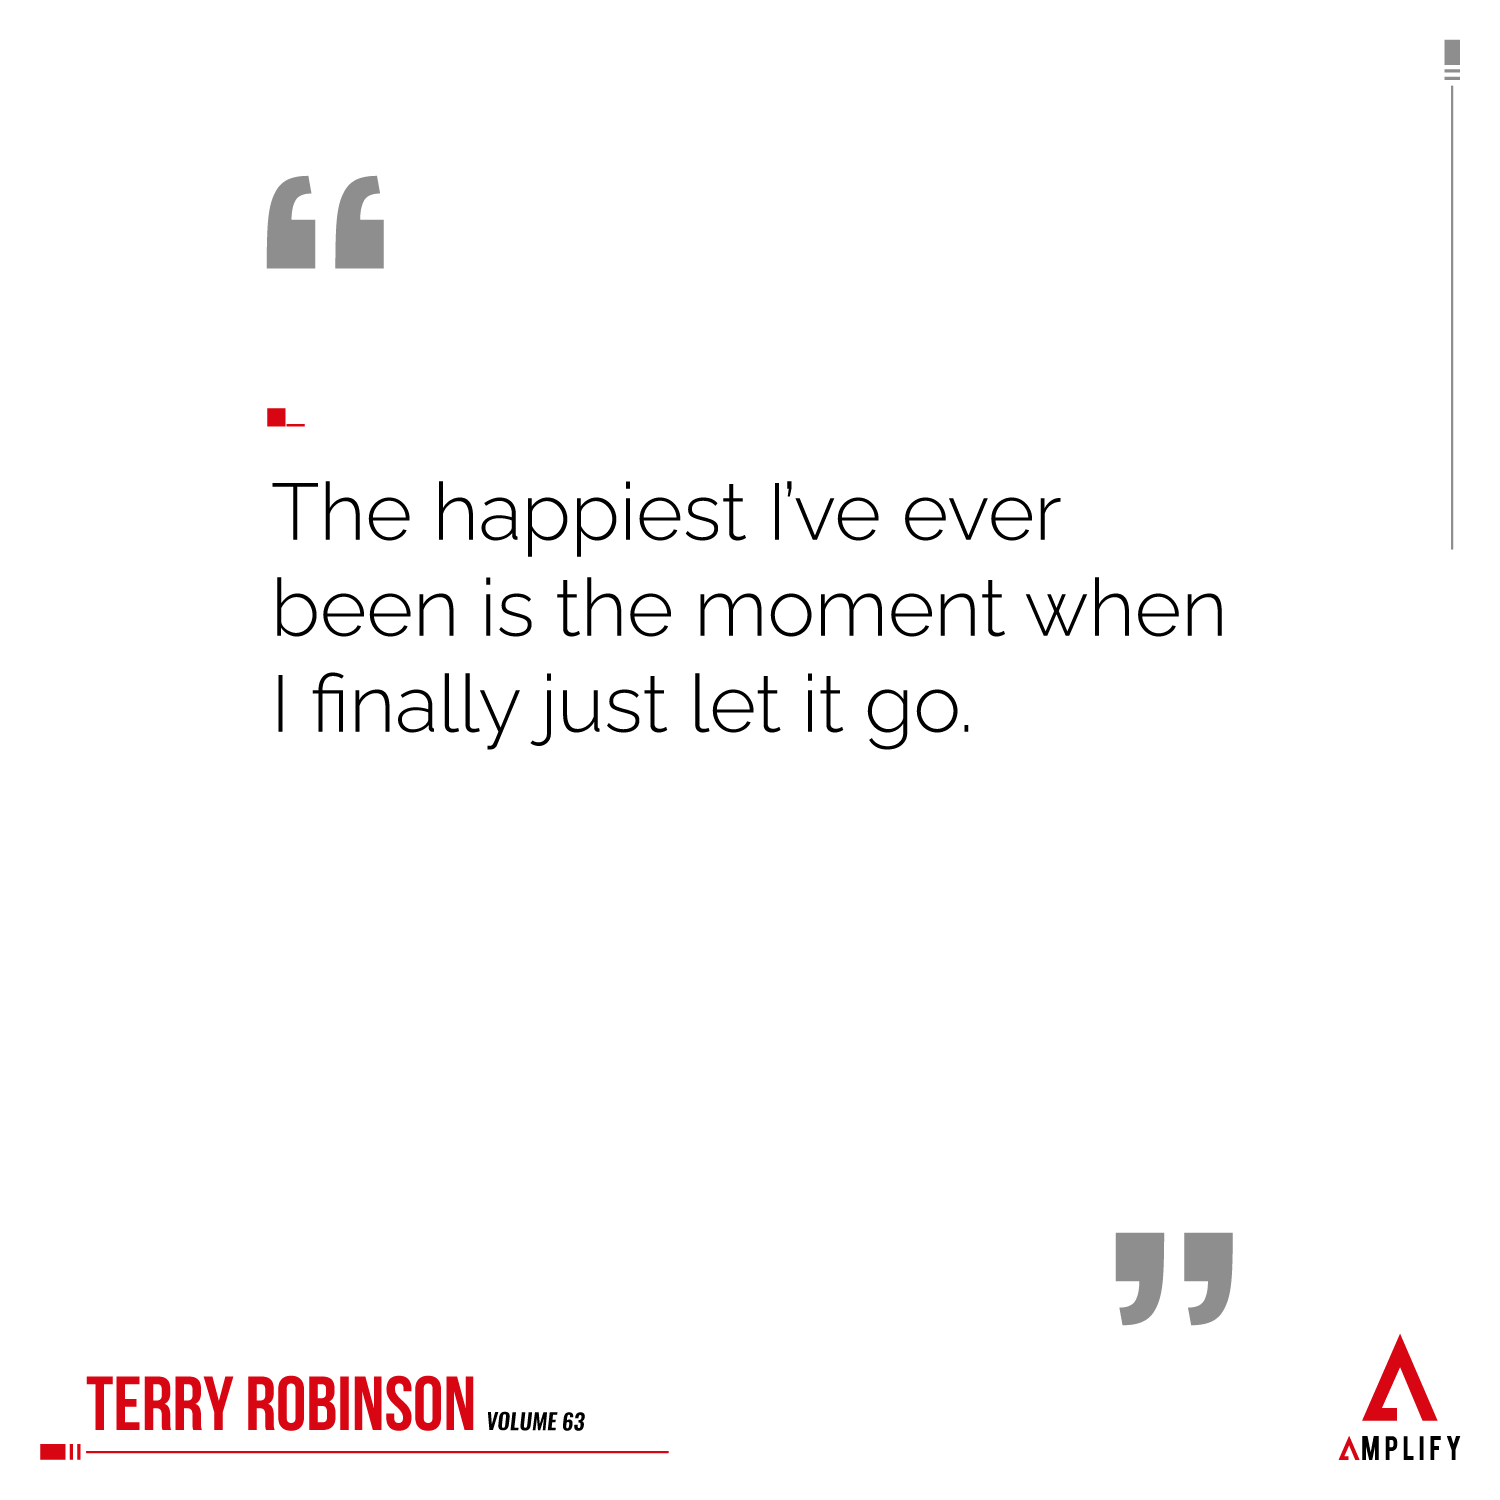 Quote: The happiest I've ever been is the moment when I finally just let it go.